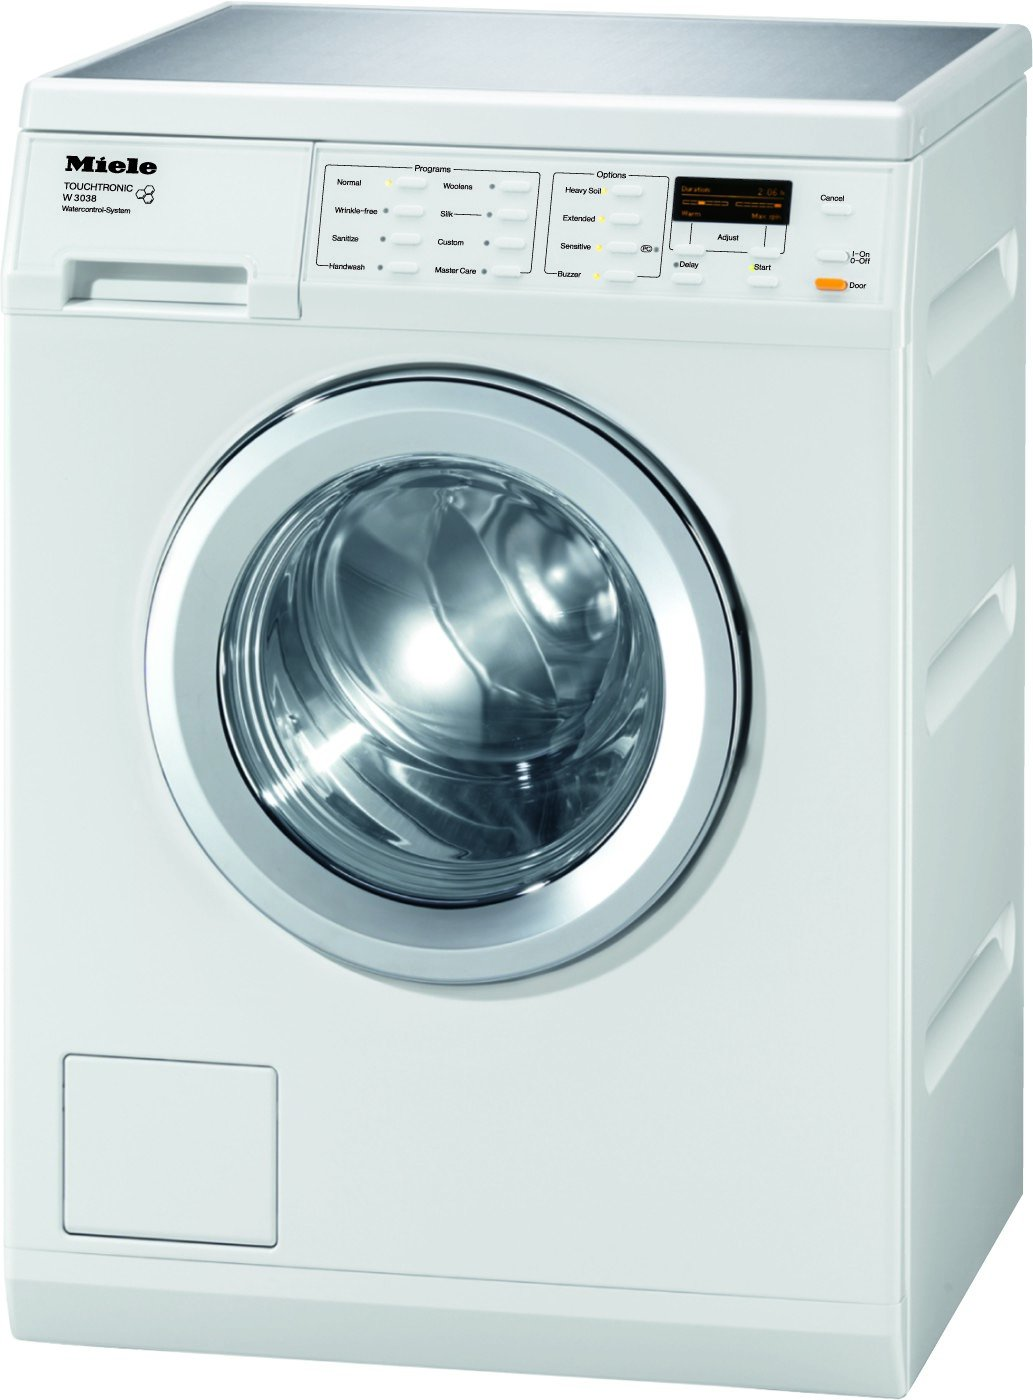 W3038 | Miele 24 Front Load Washer - White by Miele